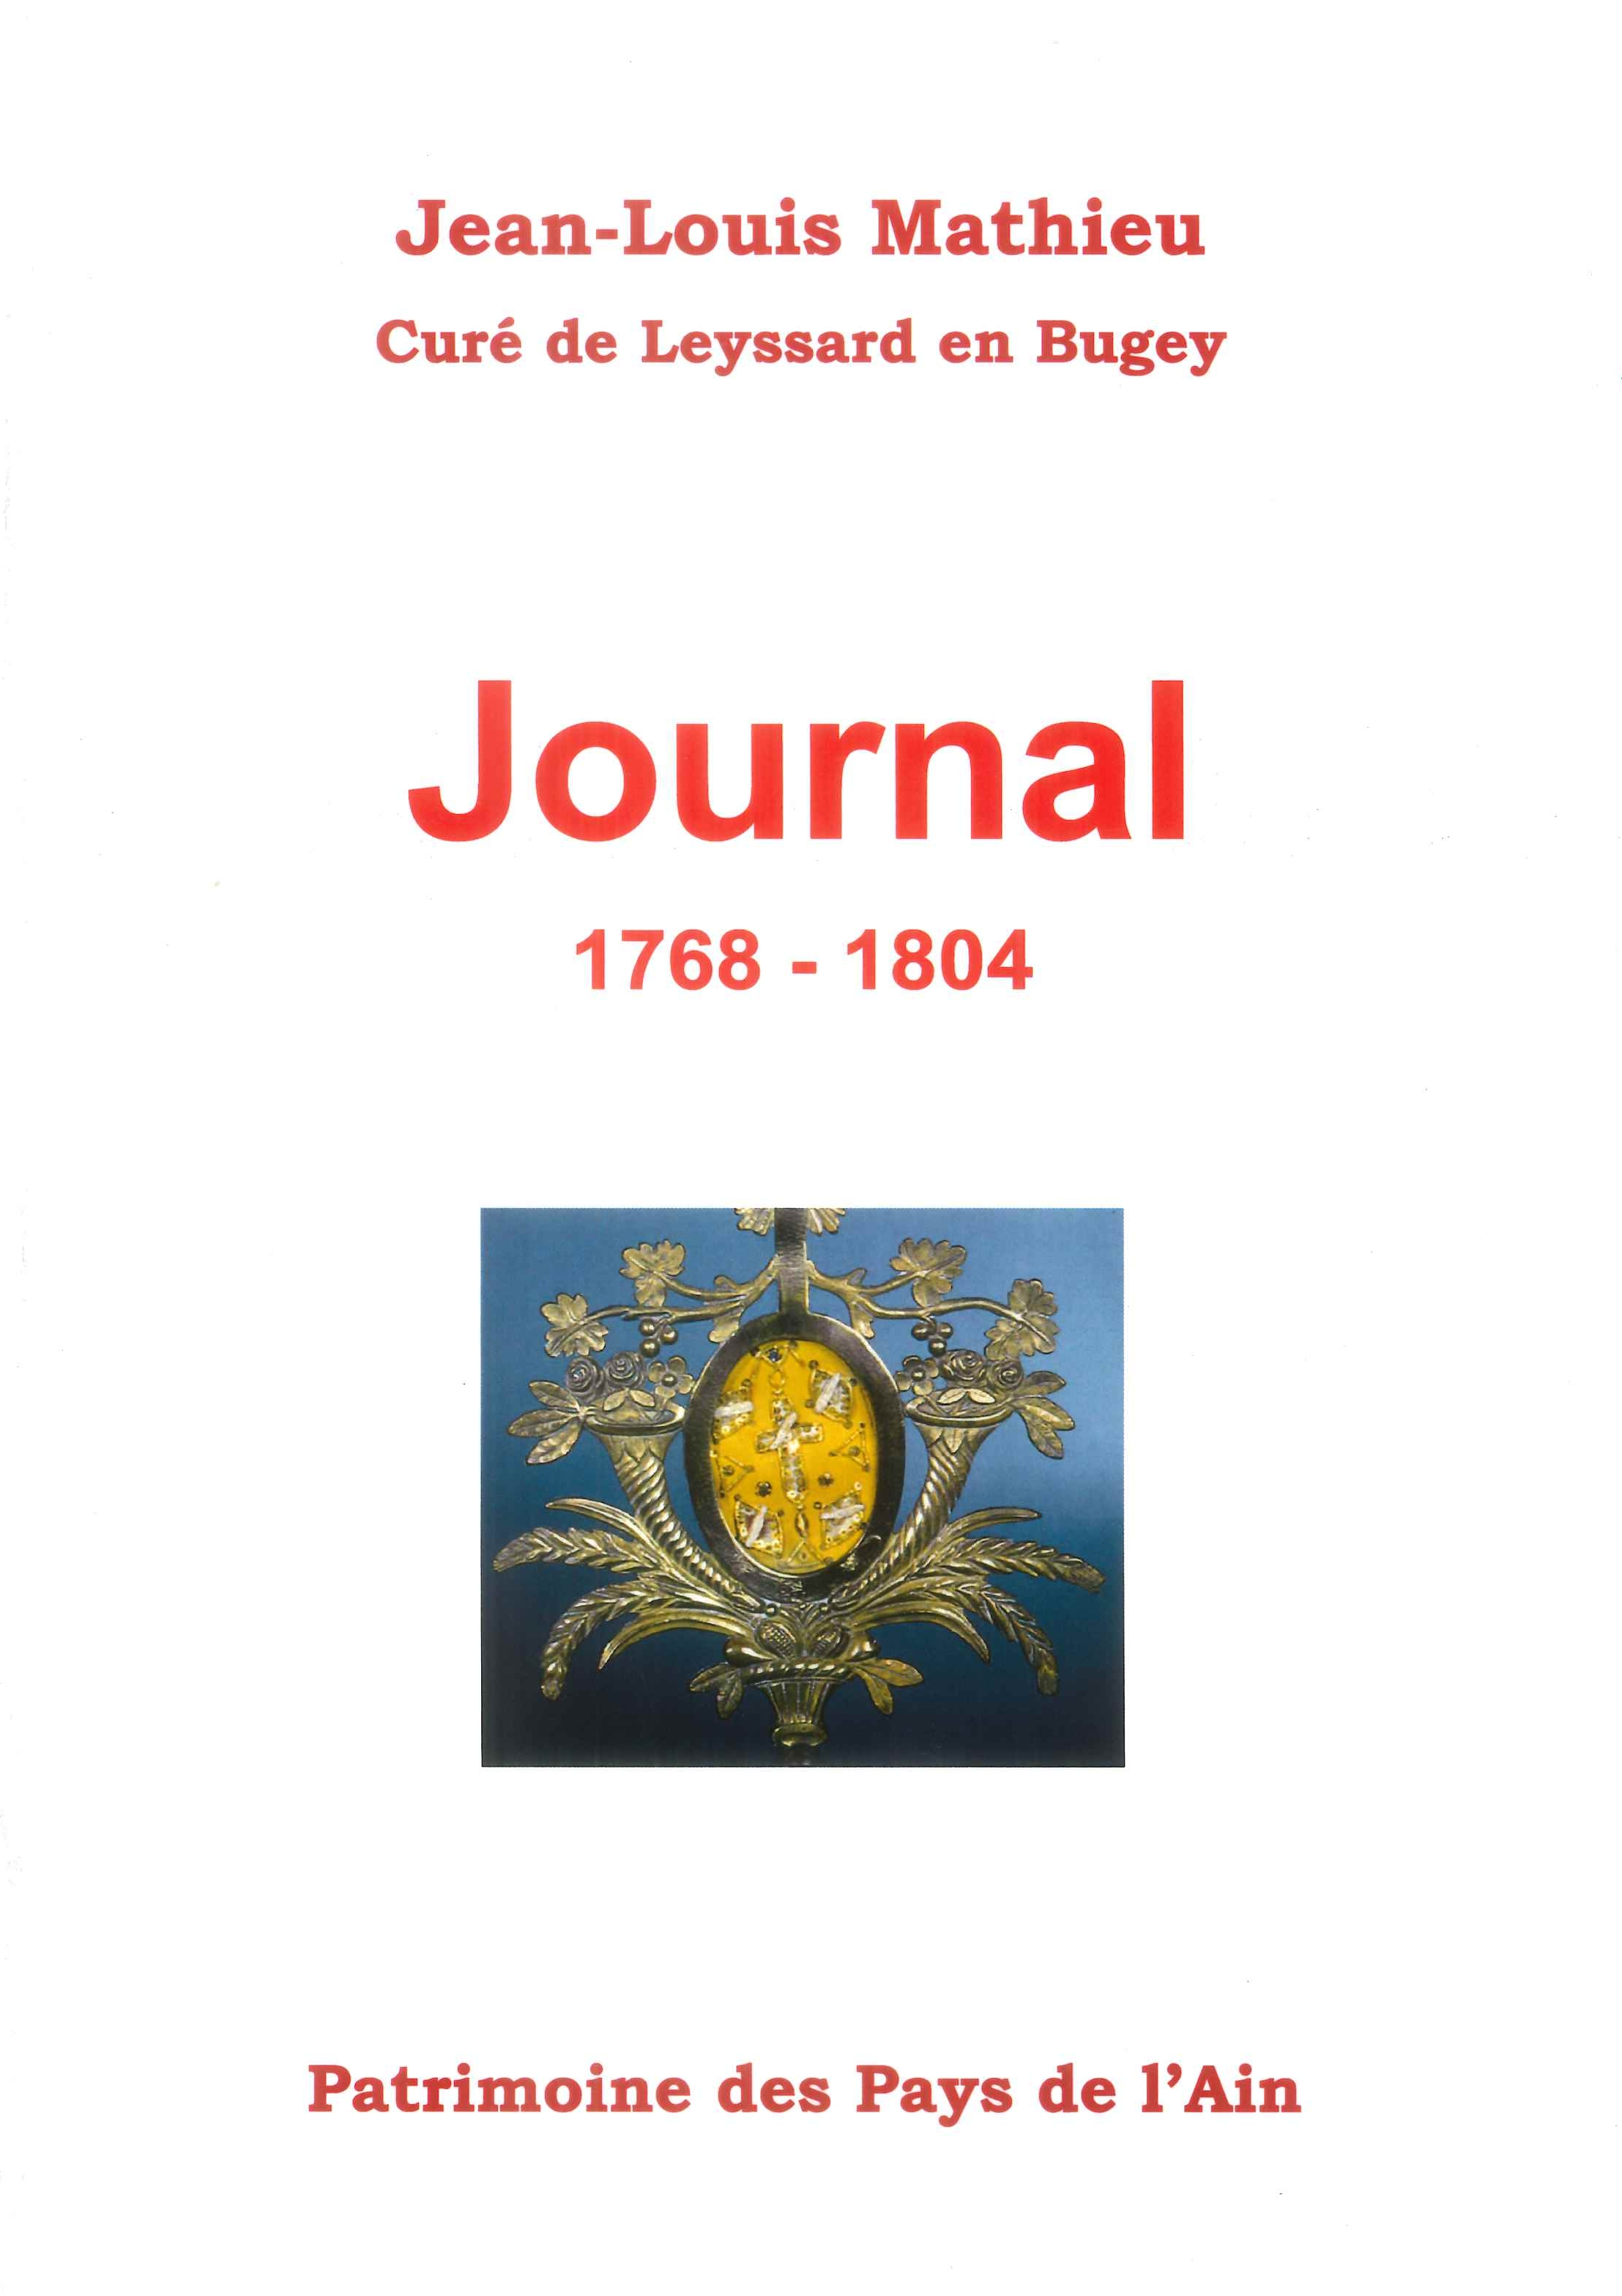 Journal Jean Louis Mathieu